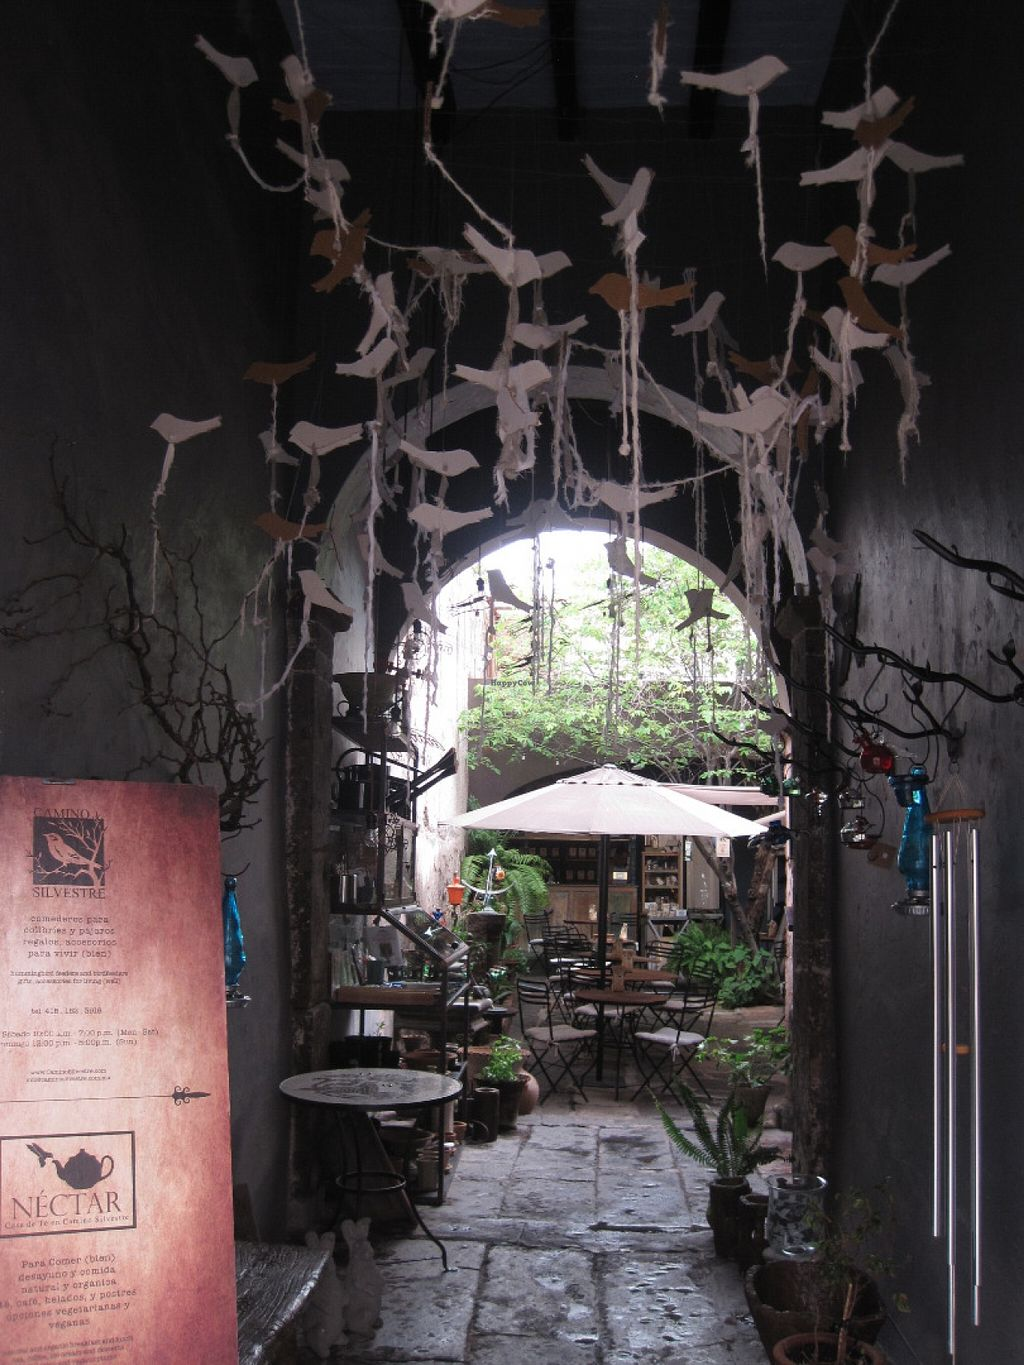 """Photo of Nectar  by <a href=""""/members/profile/sukifrance"""">sukifrance</a> <br/>You enter the courtyard through passageway under a remarkable paper mobile of flying birds <br/> July 1, 2016  - <a href='/contact/abuse/image/51693/157064'>Report</a>"""